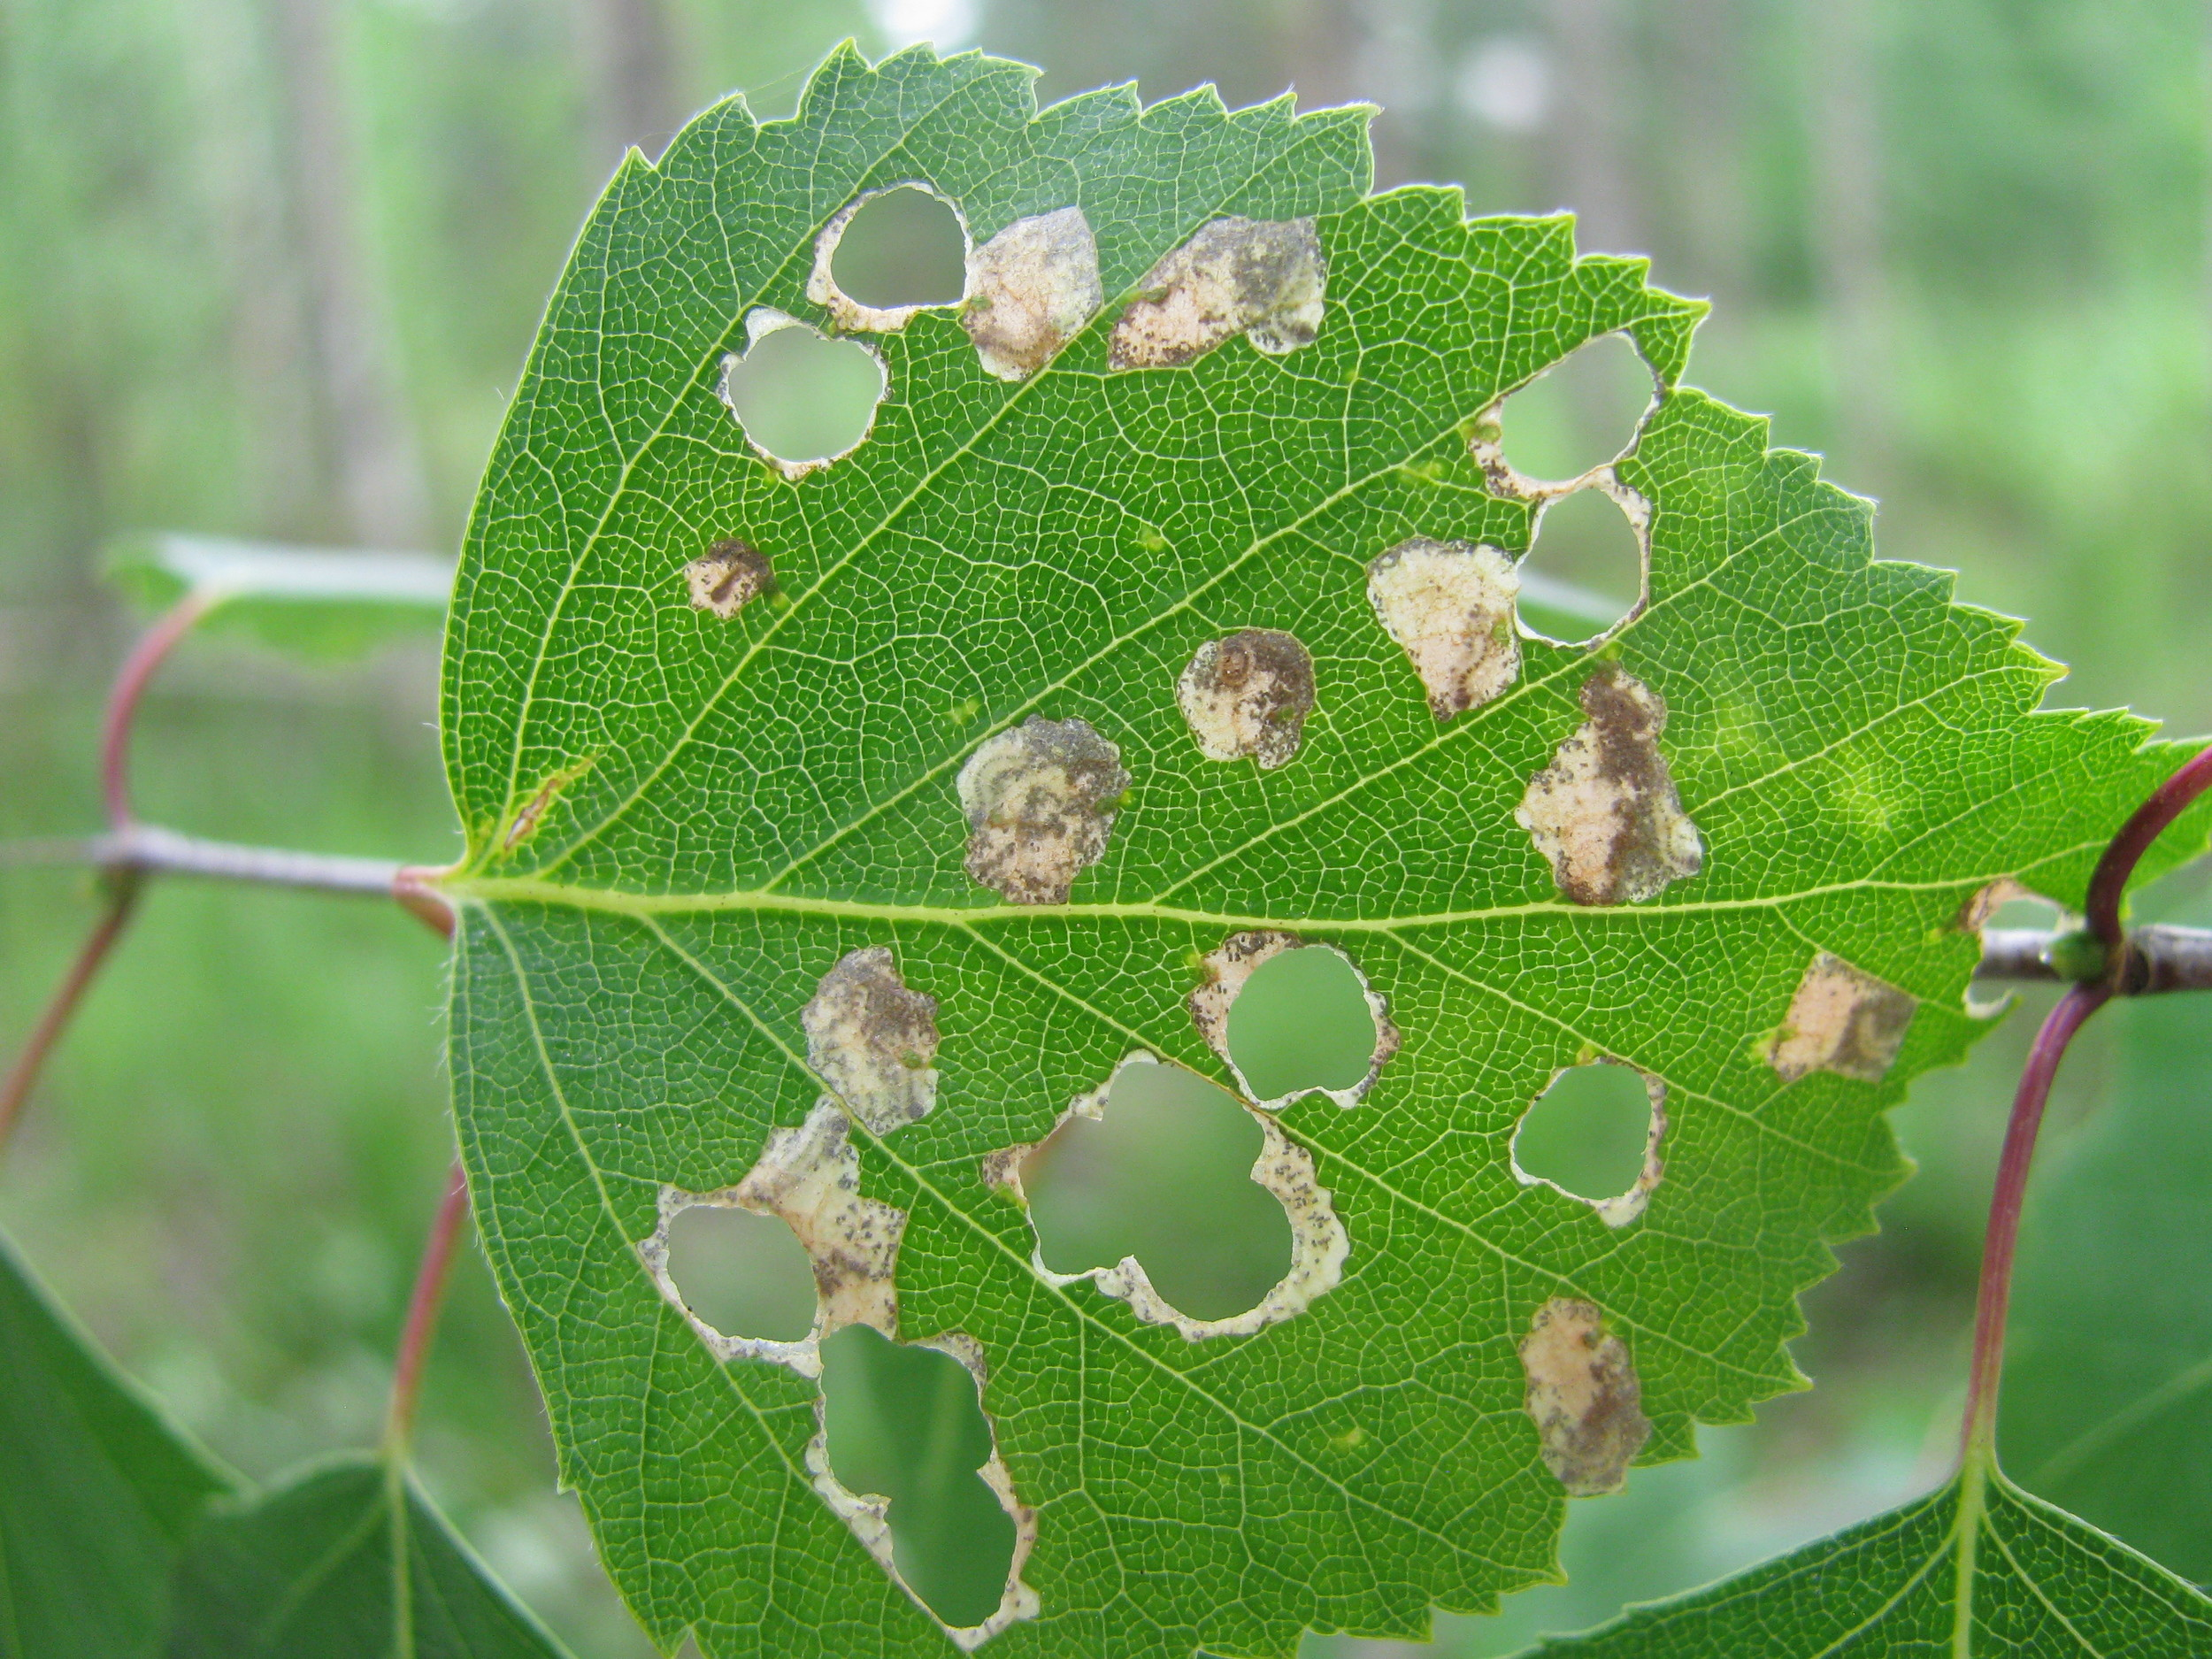 Mines of  Incurvaria pectinea  on birch